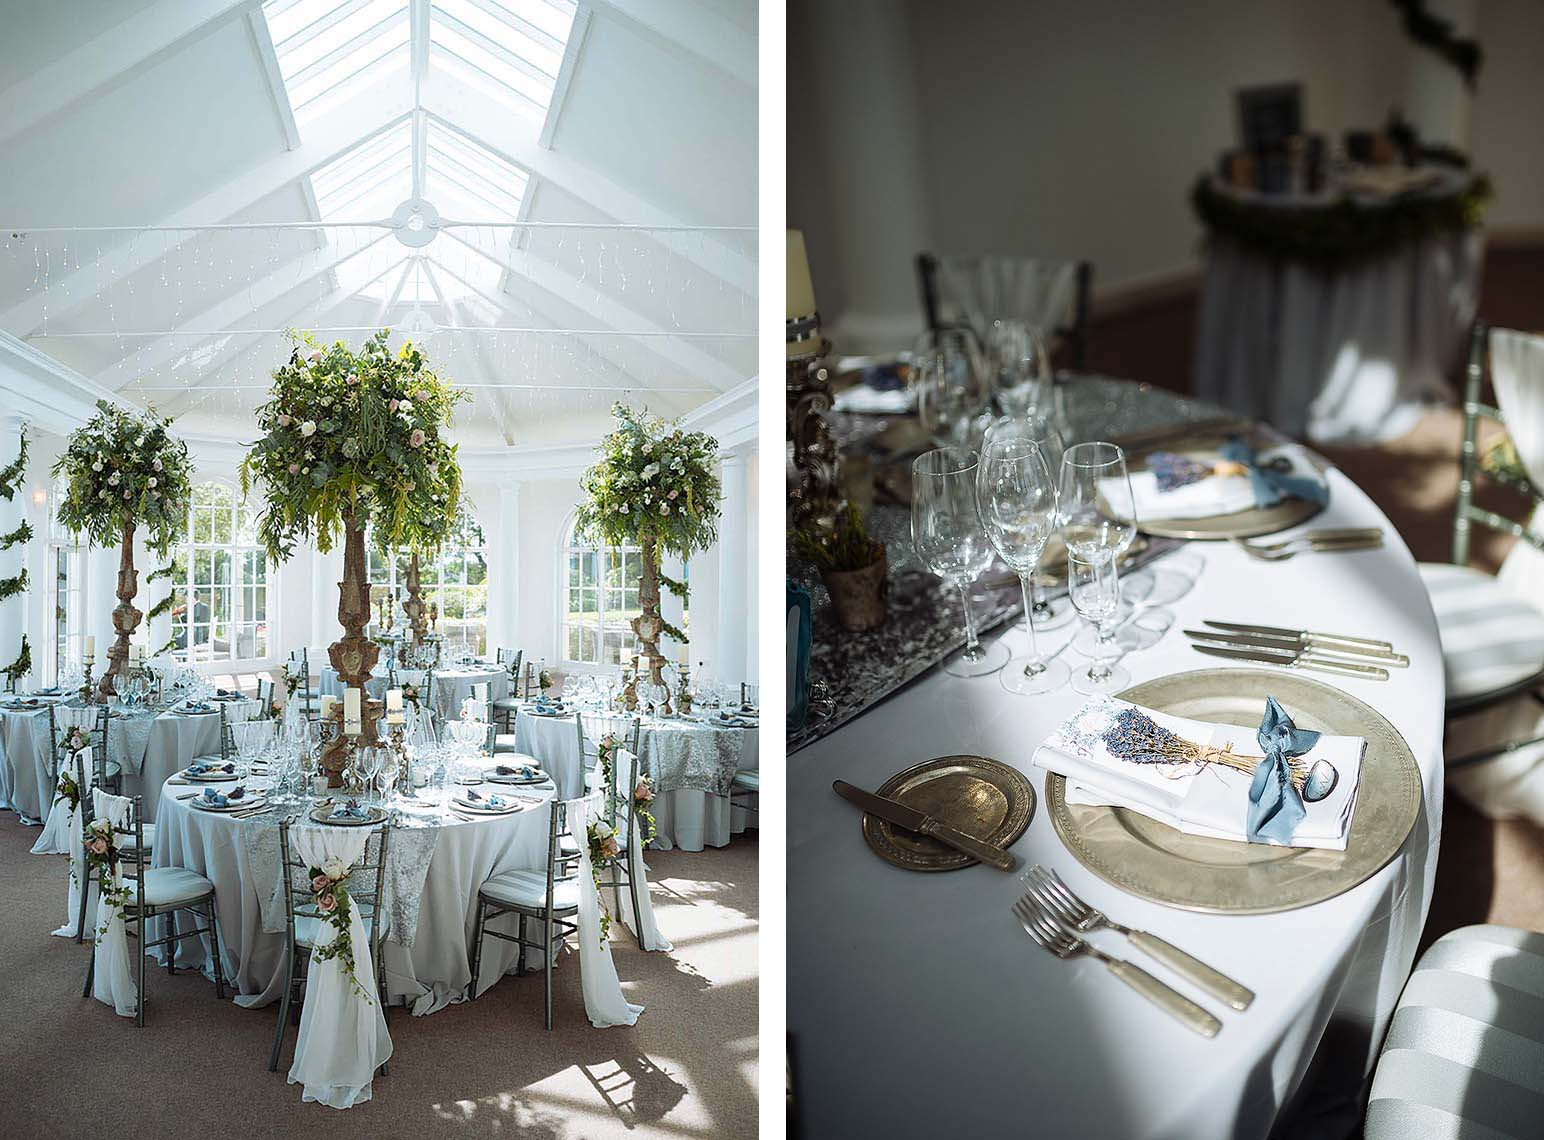 penn-castle-interior-wedding-breakfast-table-layout-dorset-wedding-photography-09